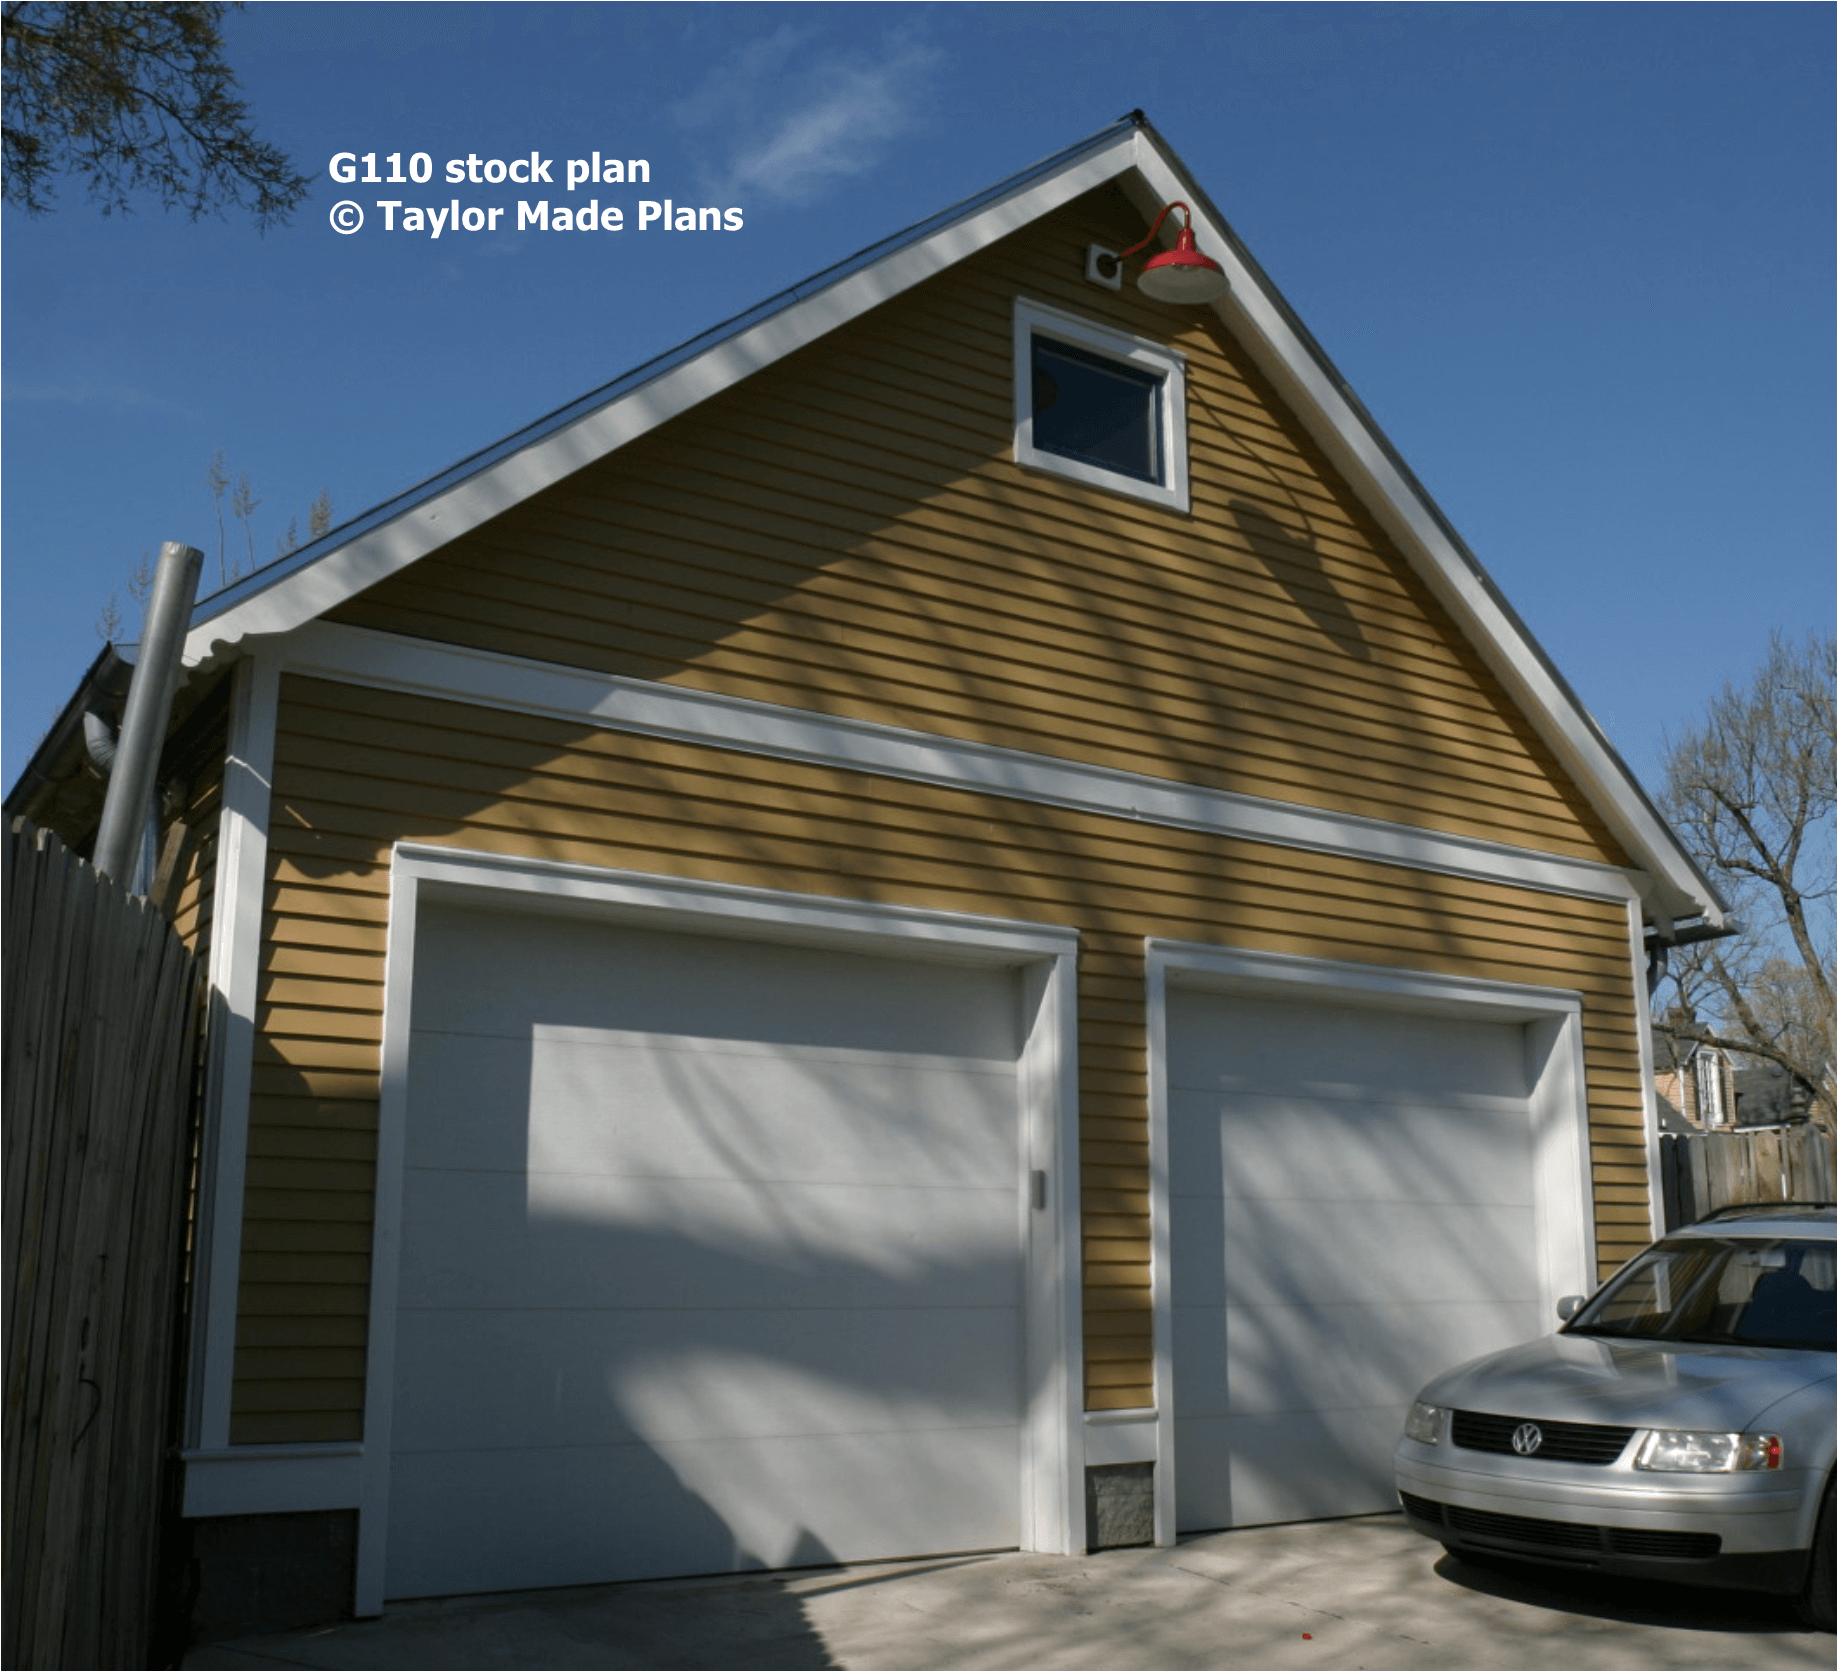 G110 Two Car Garage With Attic Storage Taylor Made Plans